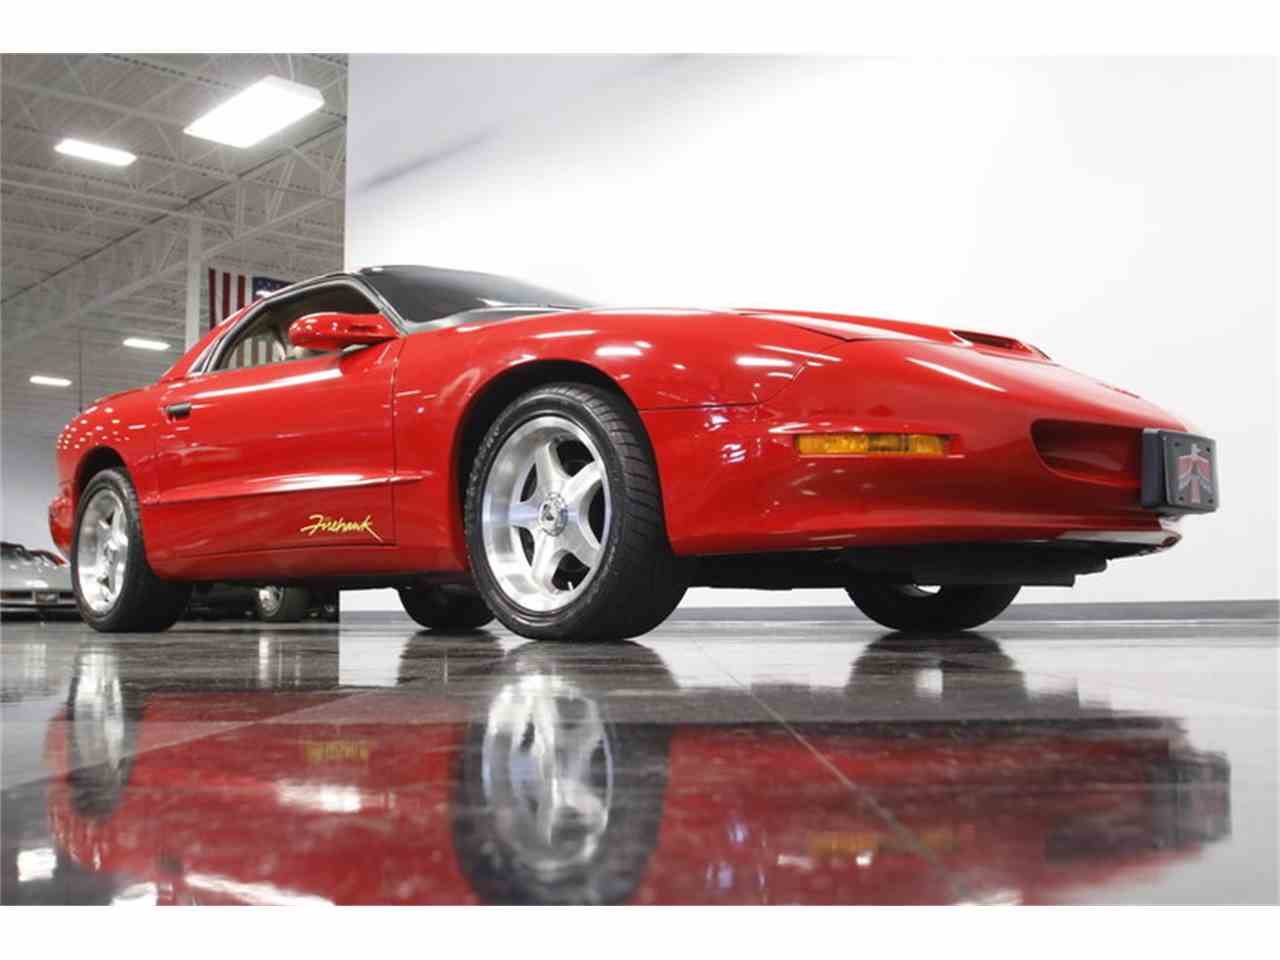 Large Picture of 1993 Firebird located in North Carolina - $15,995.00 Offered by Streetside Classics - Charlotte - MZJM